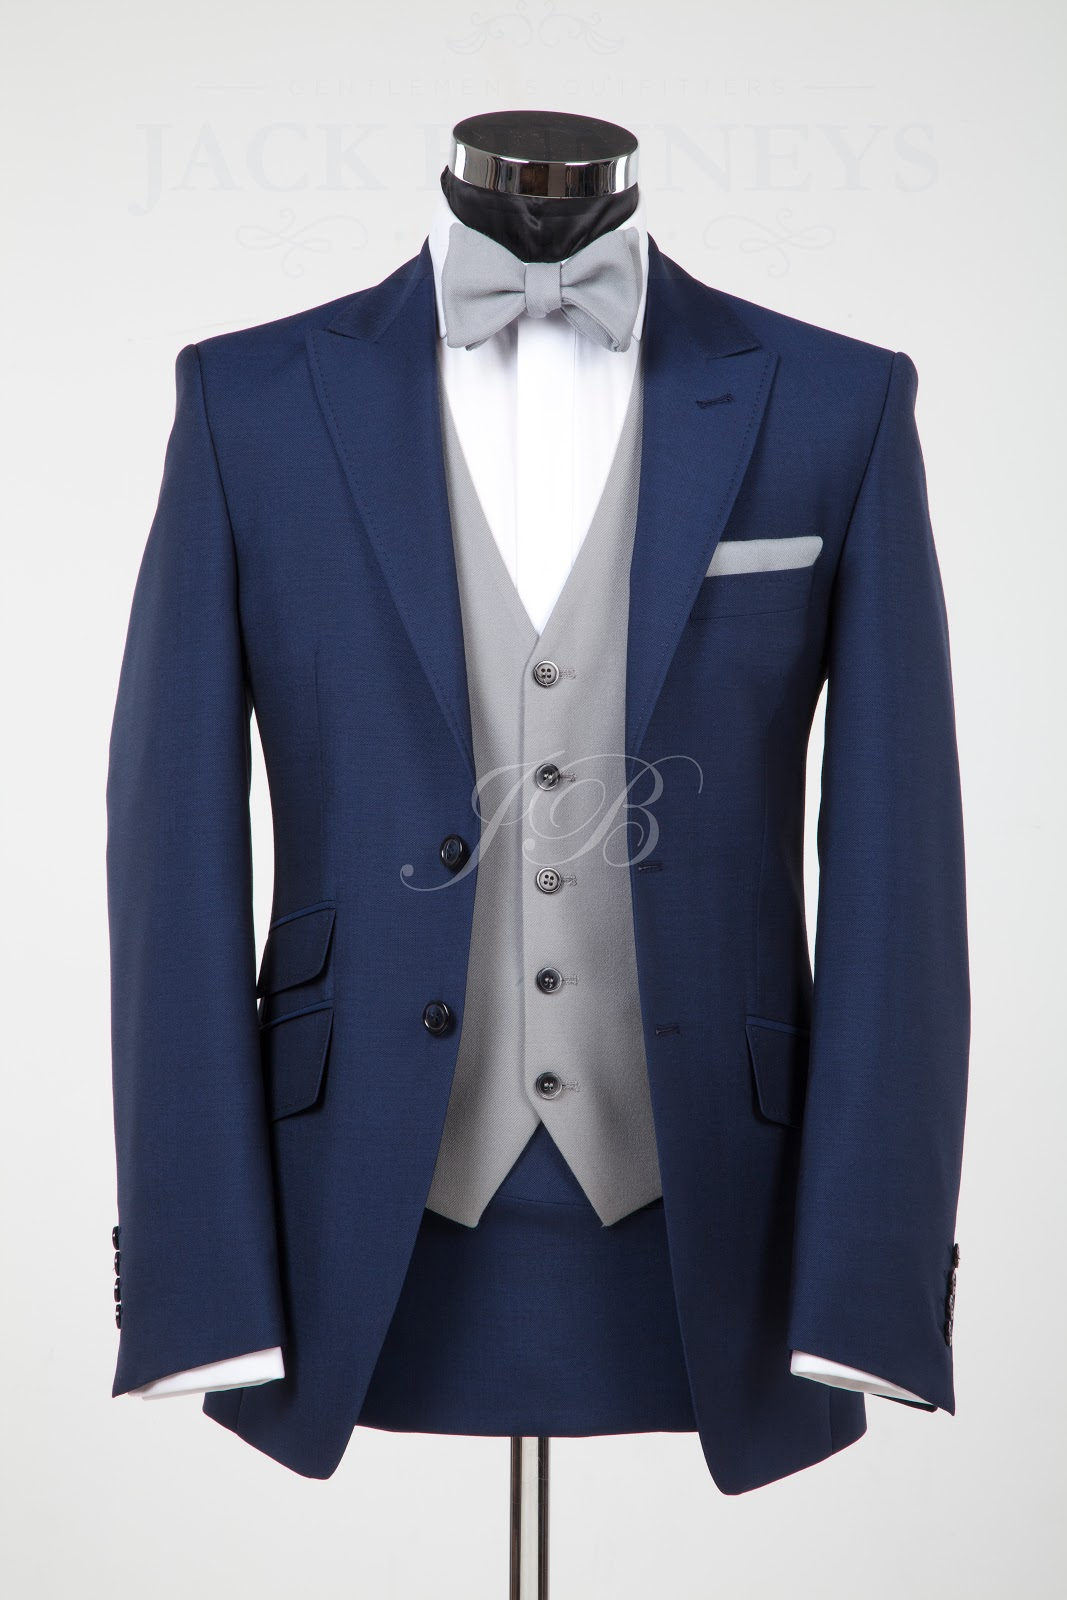 The Bunney Blog: Wedding Suits with Bow